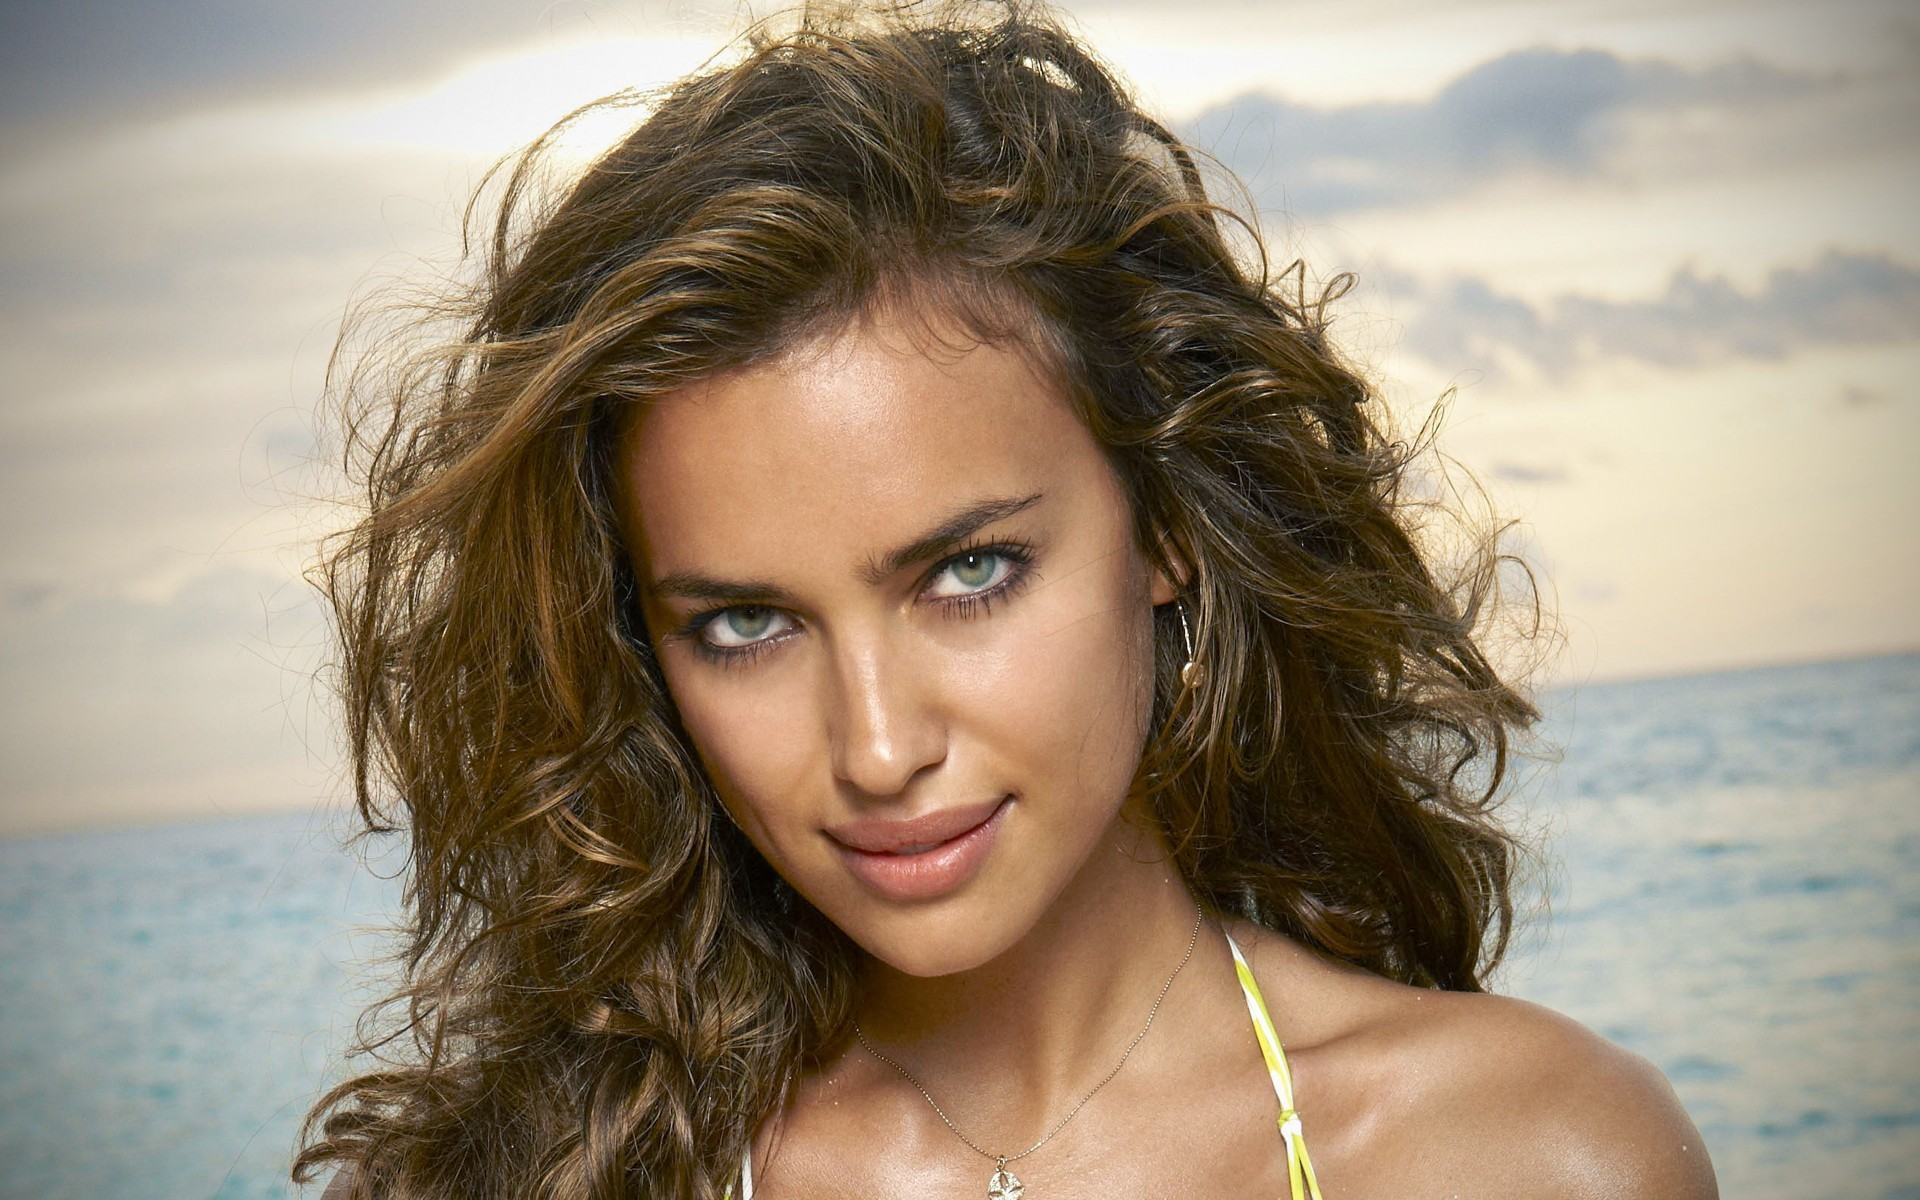 woman models Celebrity irina HD Wallpaper